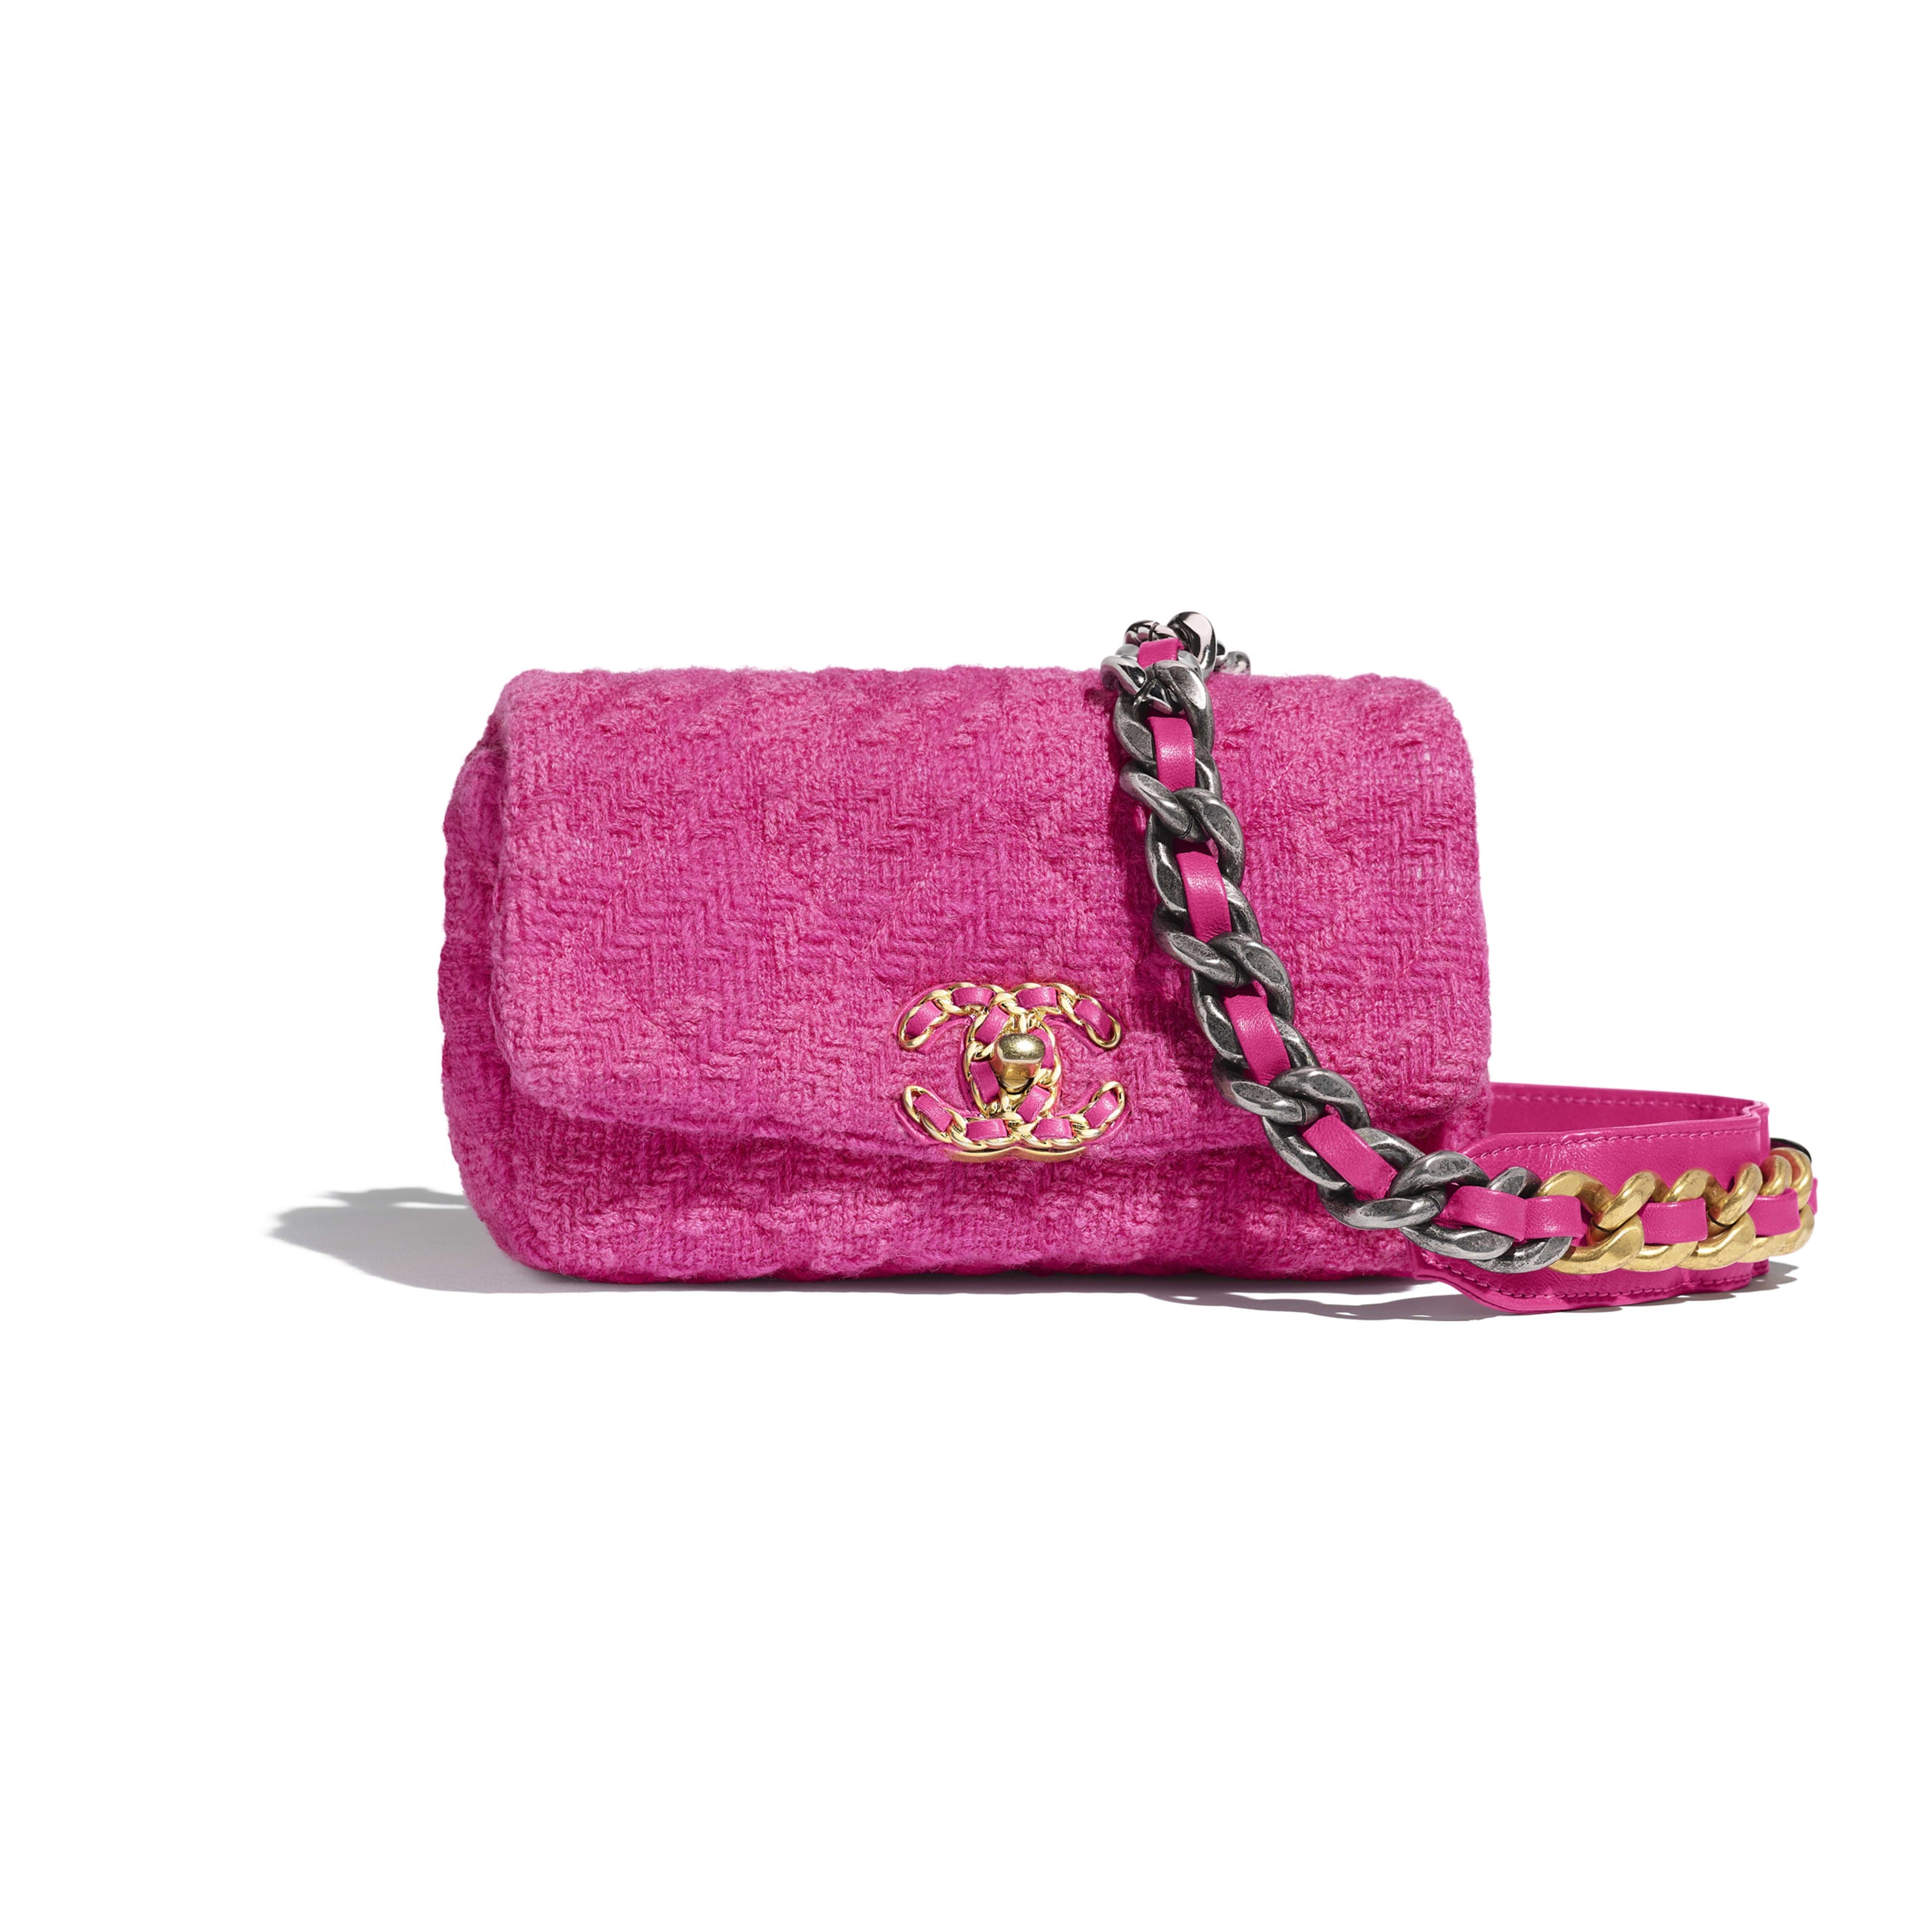 CHANEL 19 Waist Bag - Pink - Wool Tweed, Gold-Tone, Silver-Tone & Ruthenium-Finish Metal - Default view - see full sized version